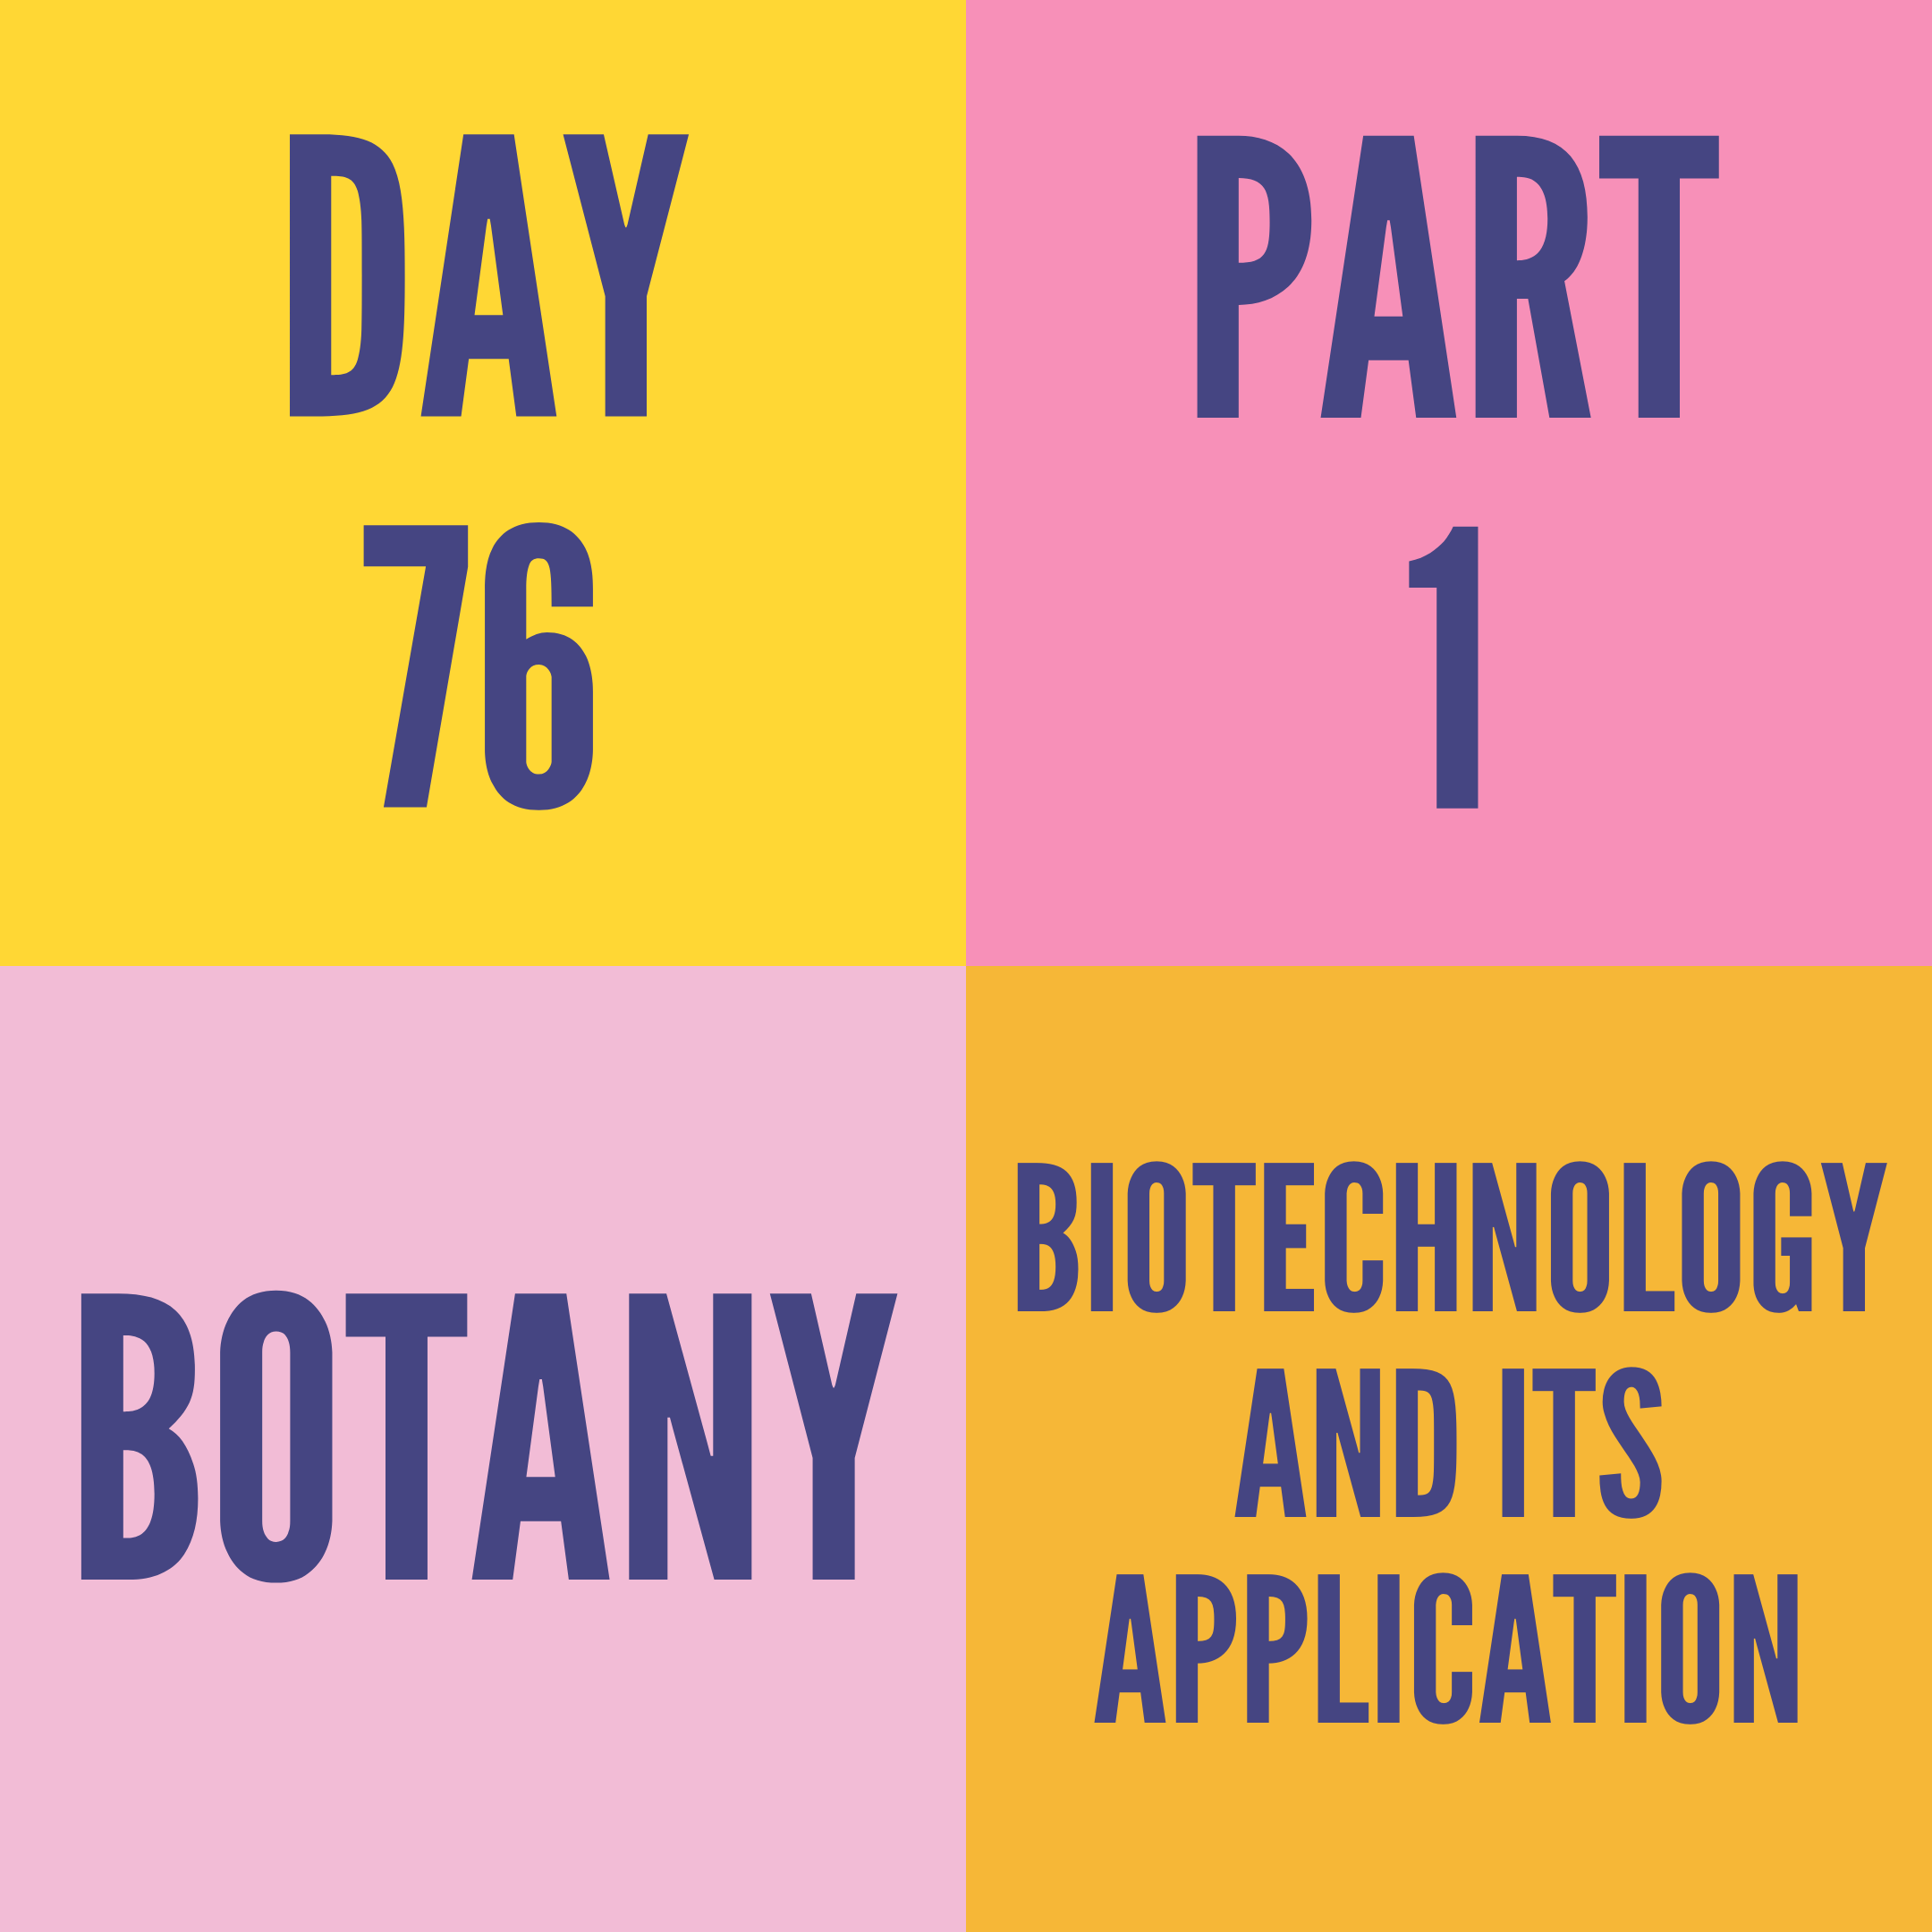 DAY-76 PART-1 BIOTECHNOLOGY AND ITS APPLICATION